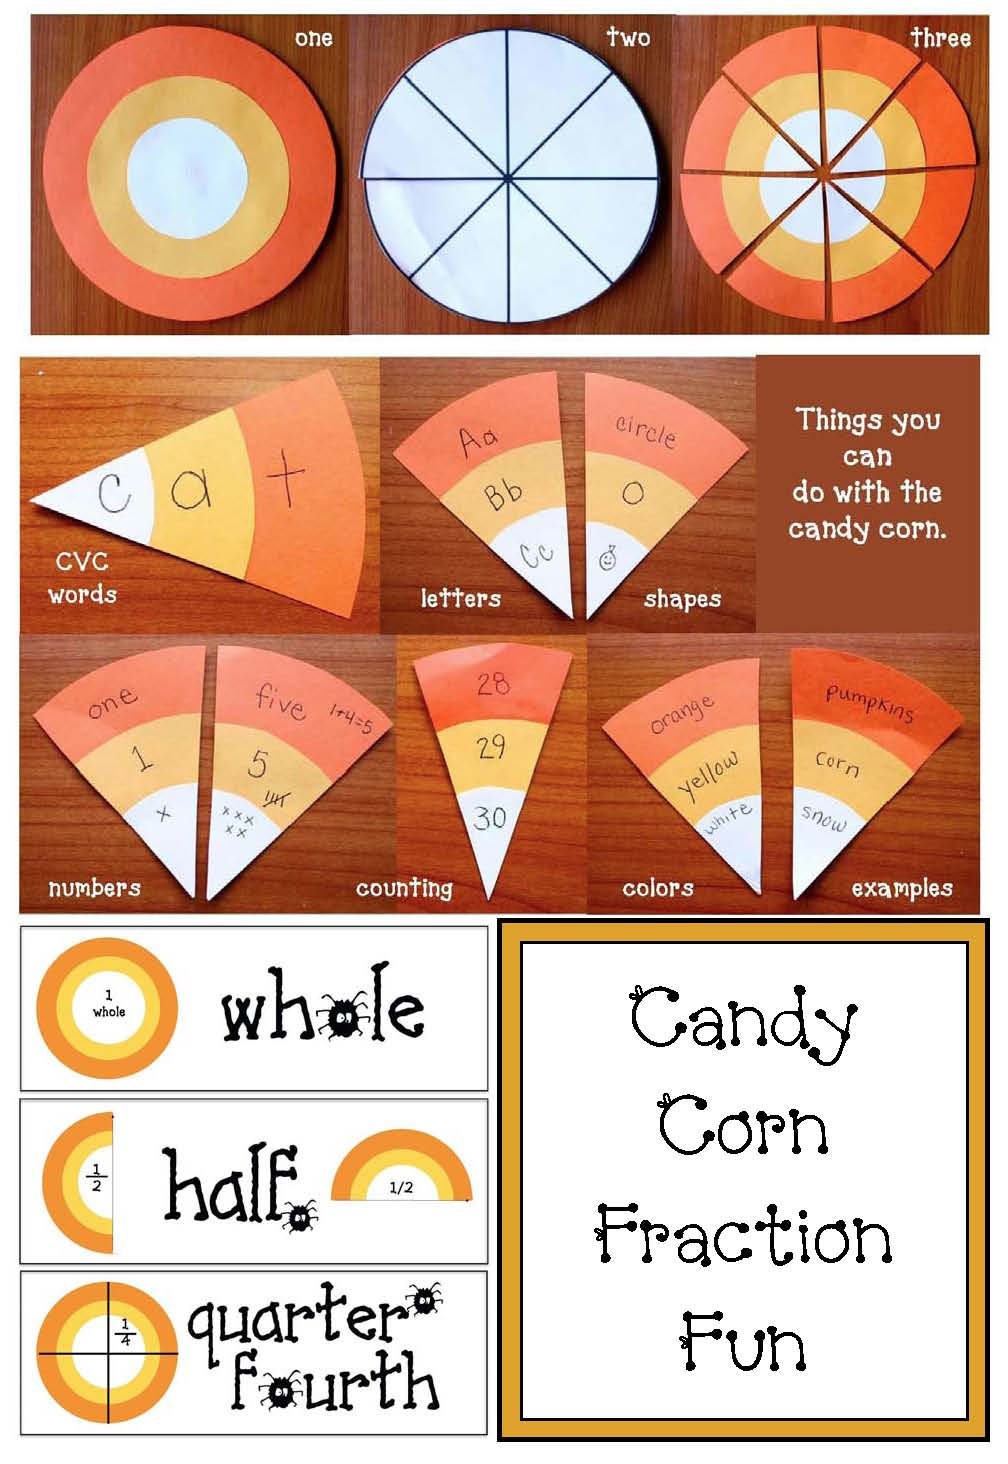 halloween crafts, halloween activities, halloween party day ideas, fraction activities, candy corn math, candy corn fractions, candy corn crafts, small medium large activities, shape activities, circle activities